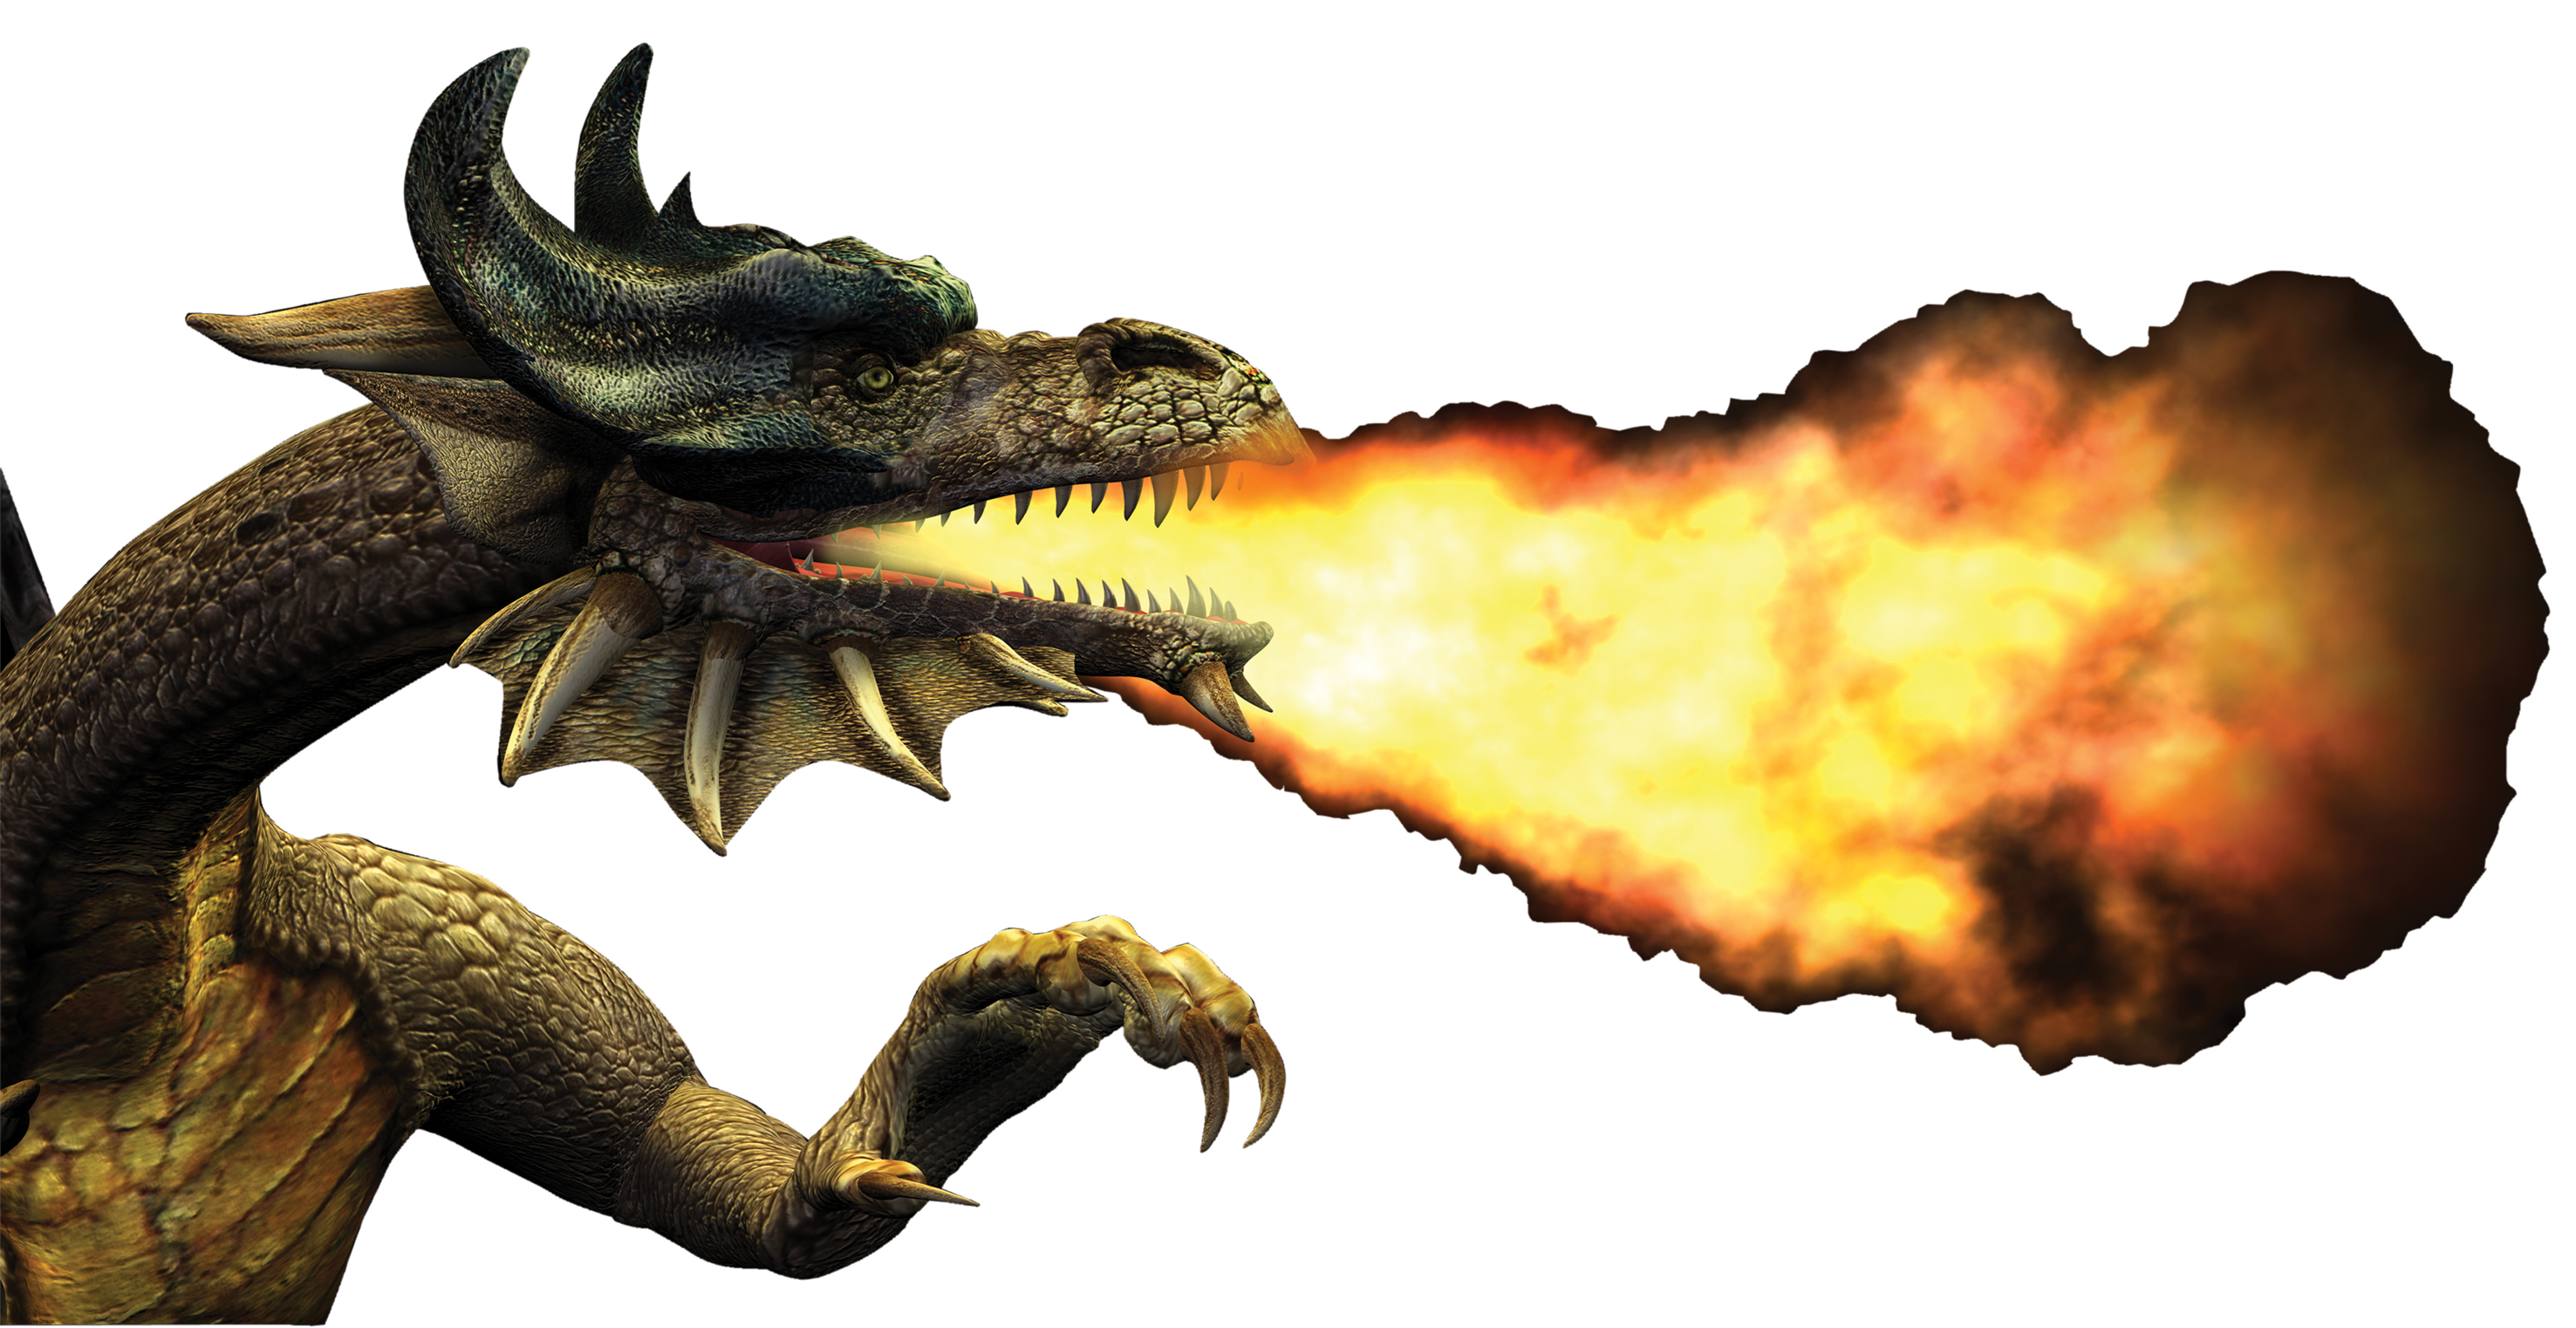 Fire Breathing Dragon - Cliparts.co